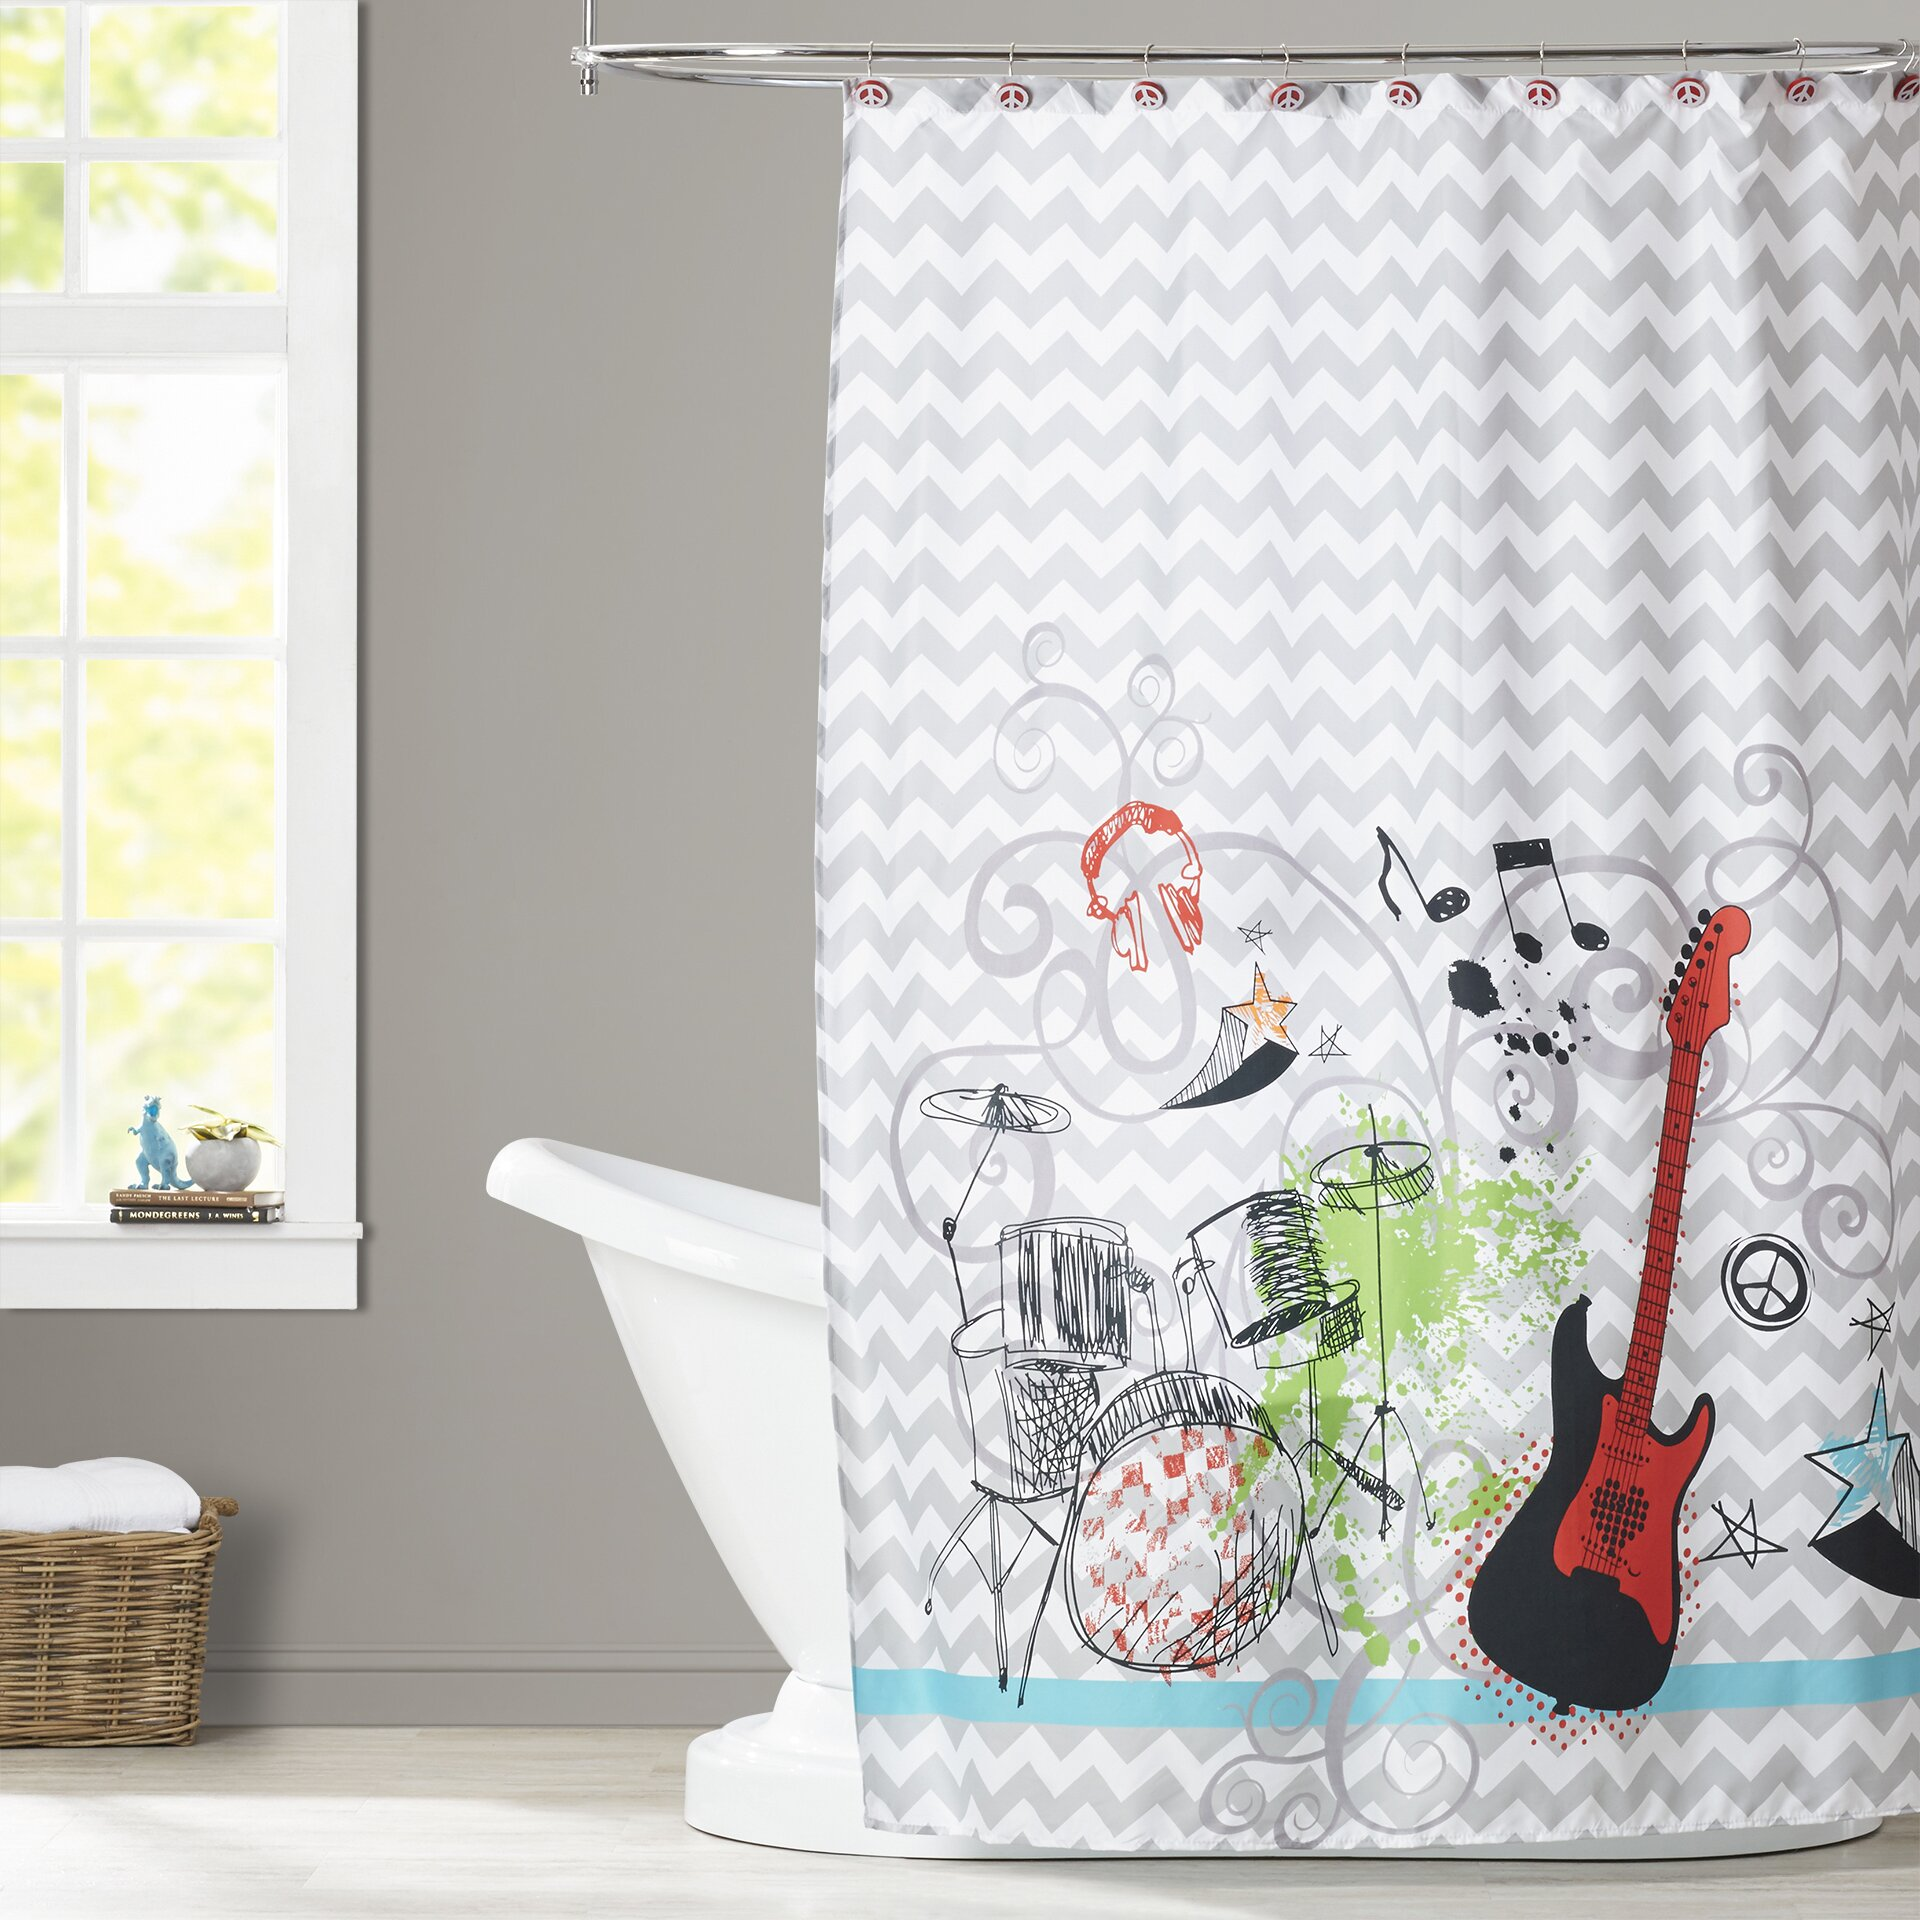 Zoomie kids quintin 13 piece shower curtain set reviews for Kids shower curtain sets